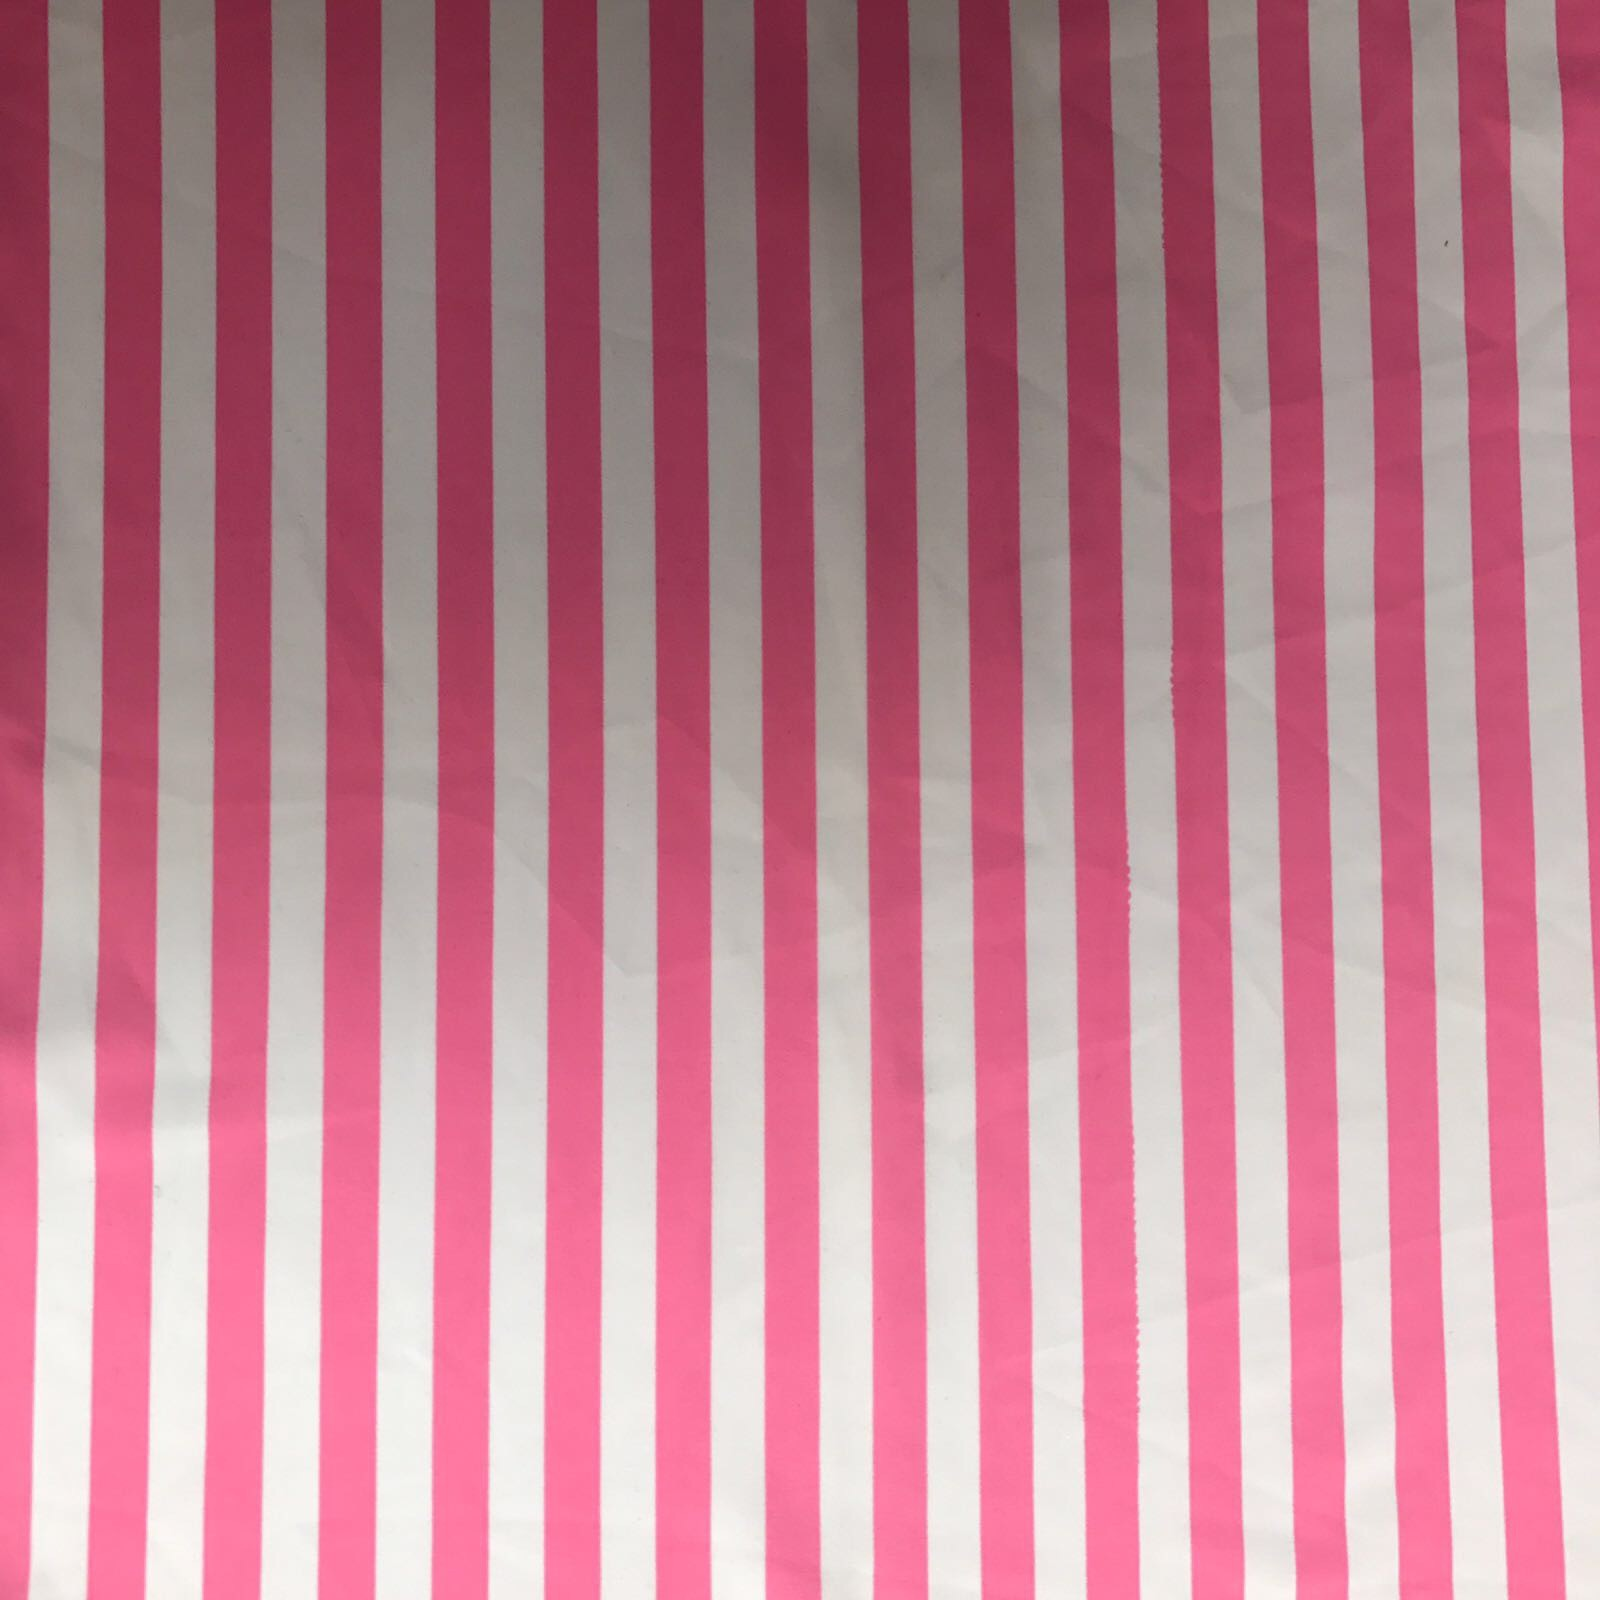 Pink and White Stripes